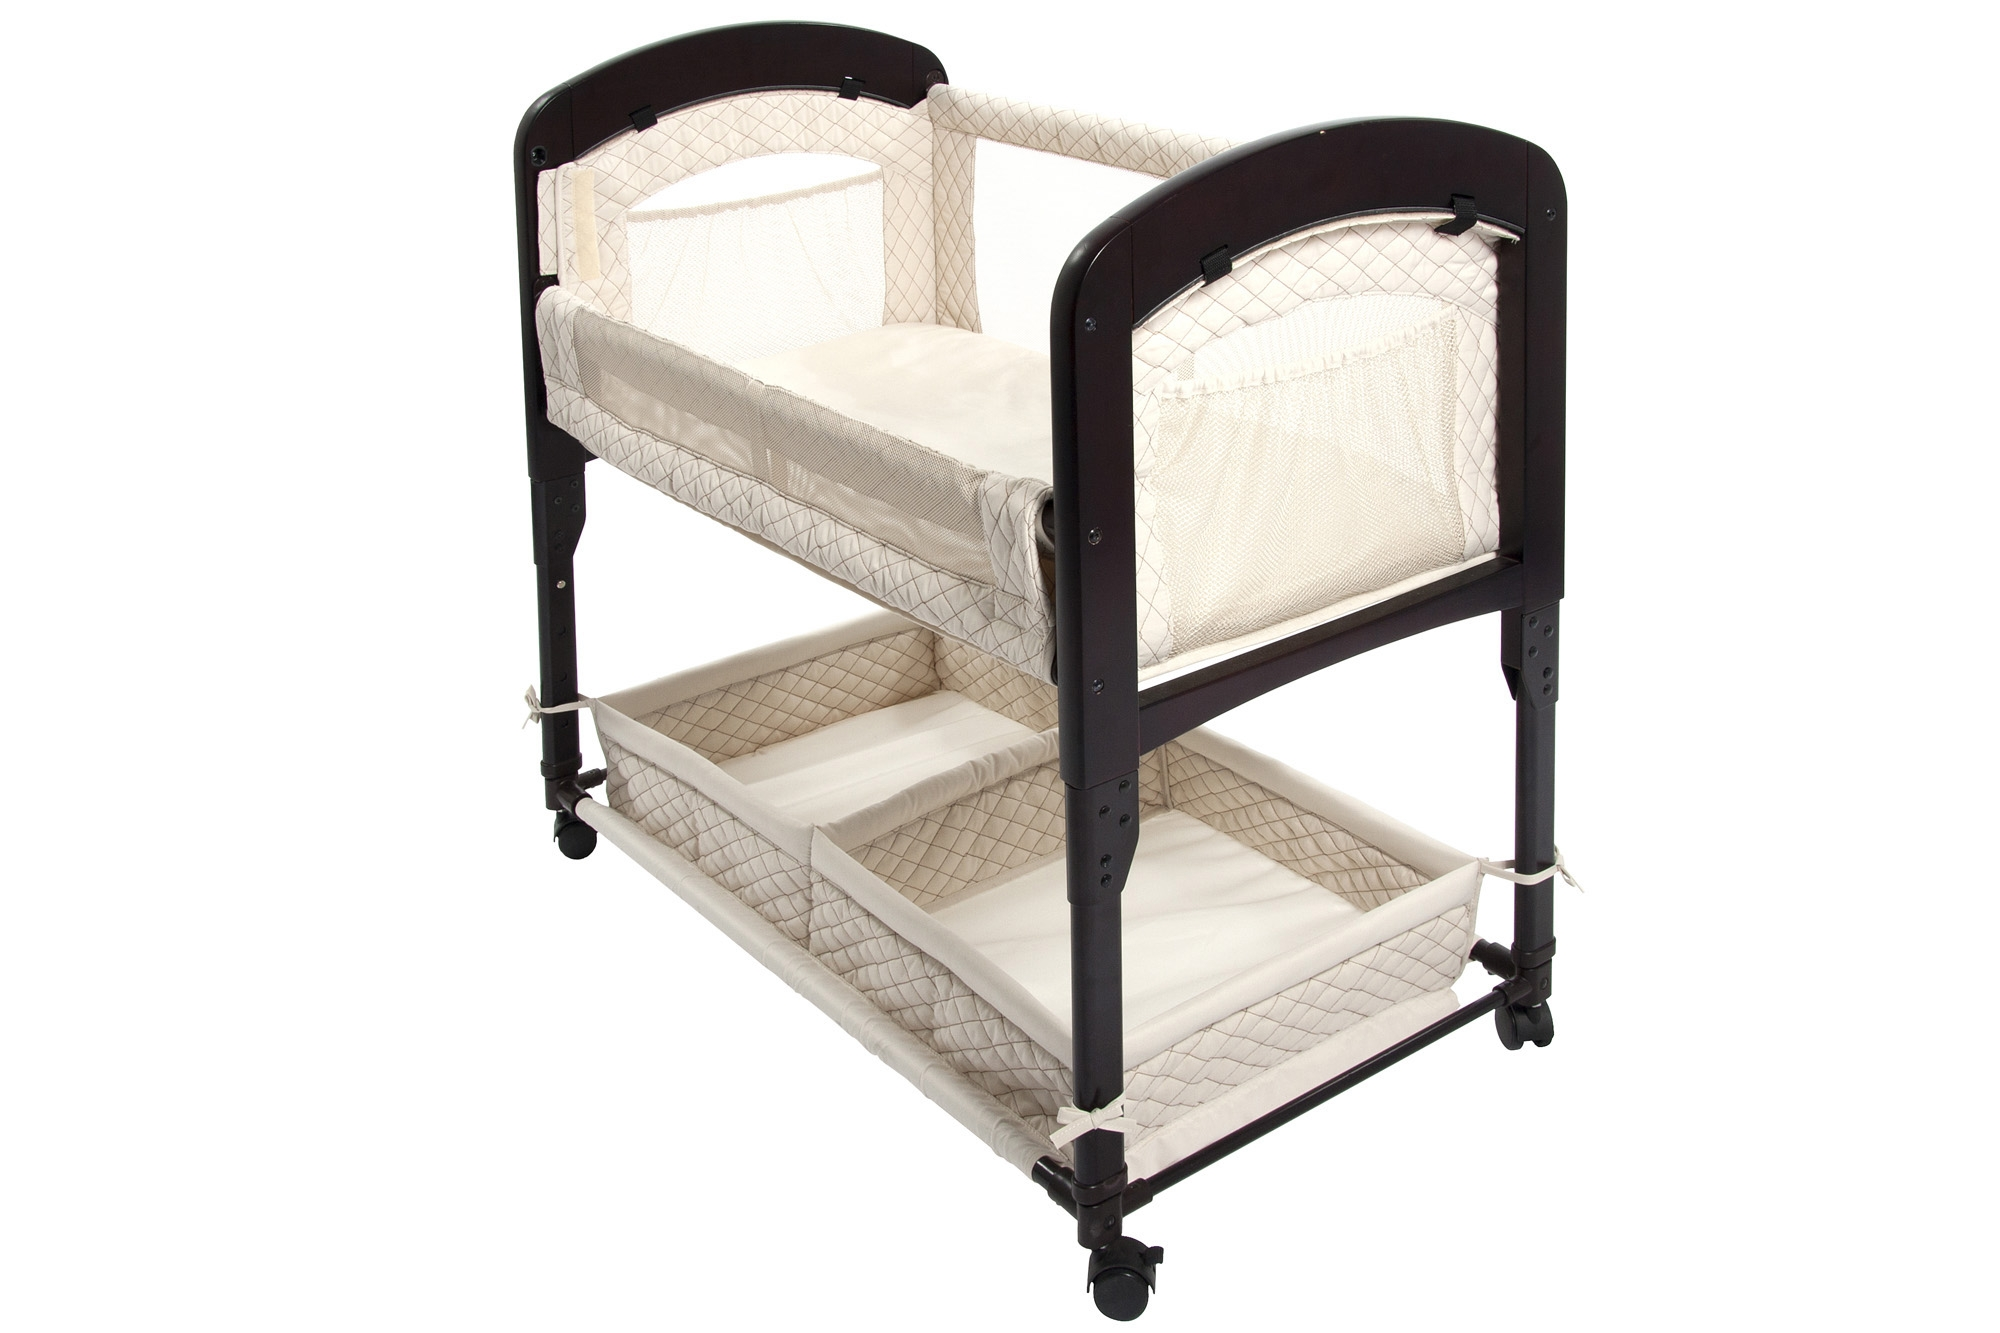 my in density foam deal mattress friend delivery a free sleeper cot high baby micuna installation co nutshell